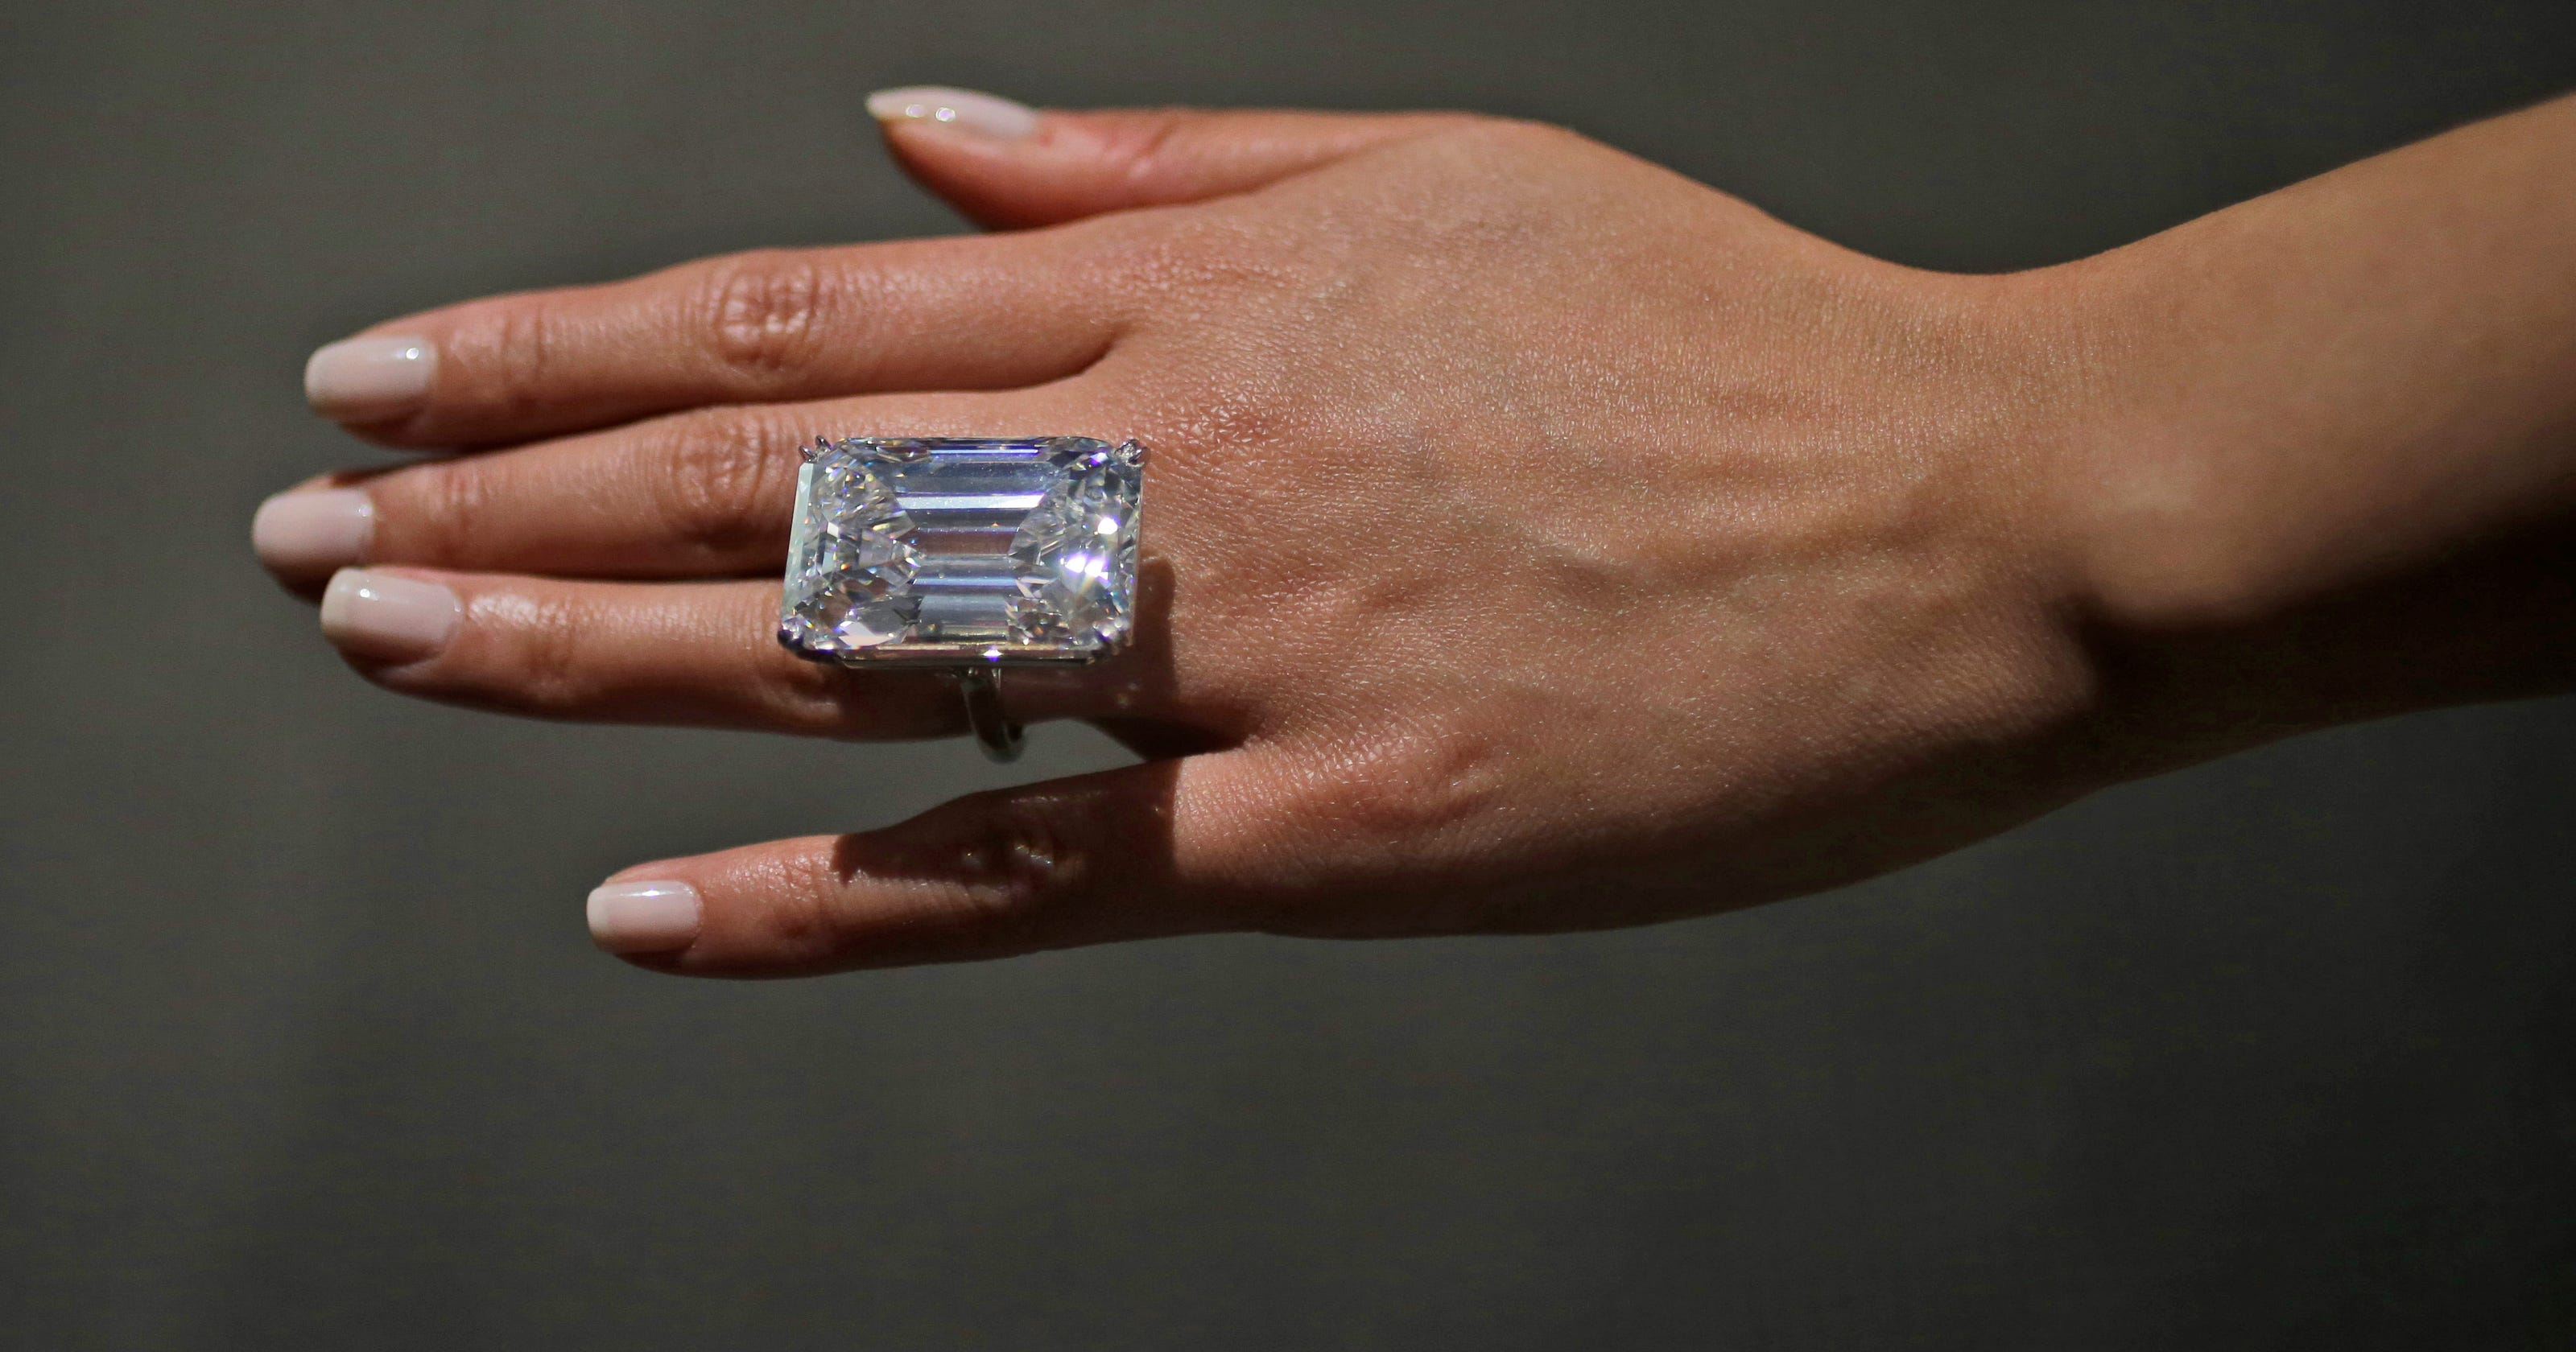 Massive 100 Carat Diamond Ring Sells For 22m At Auction